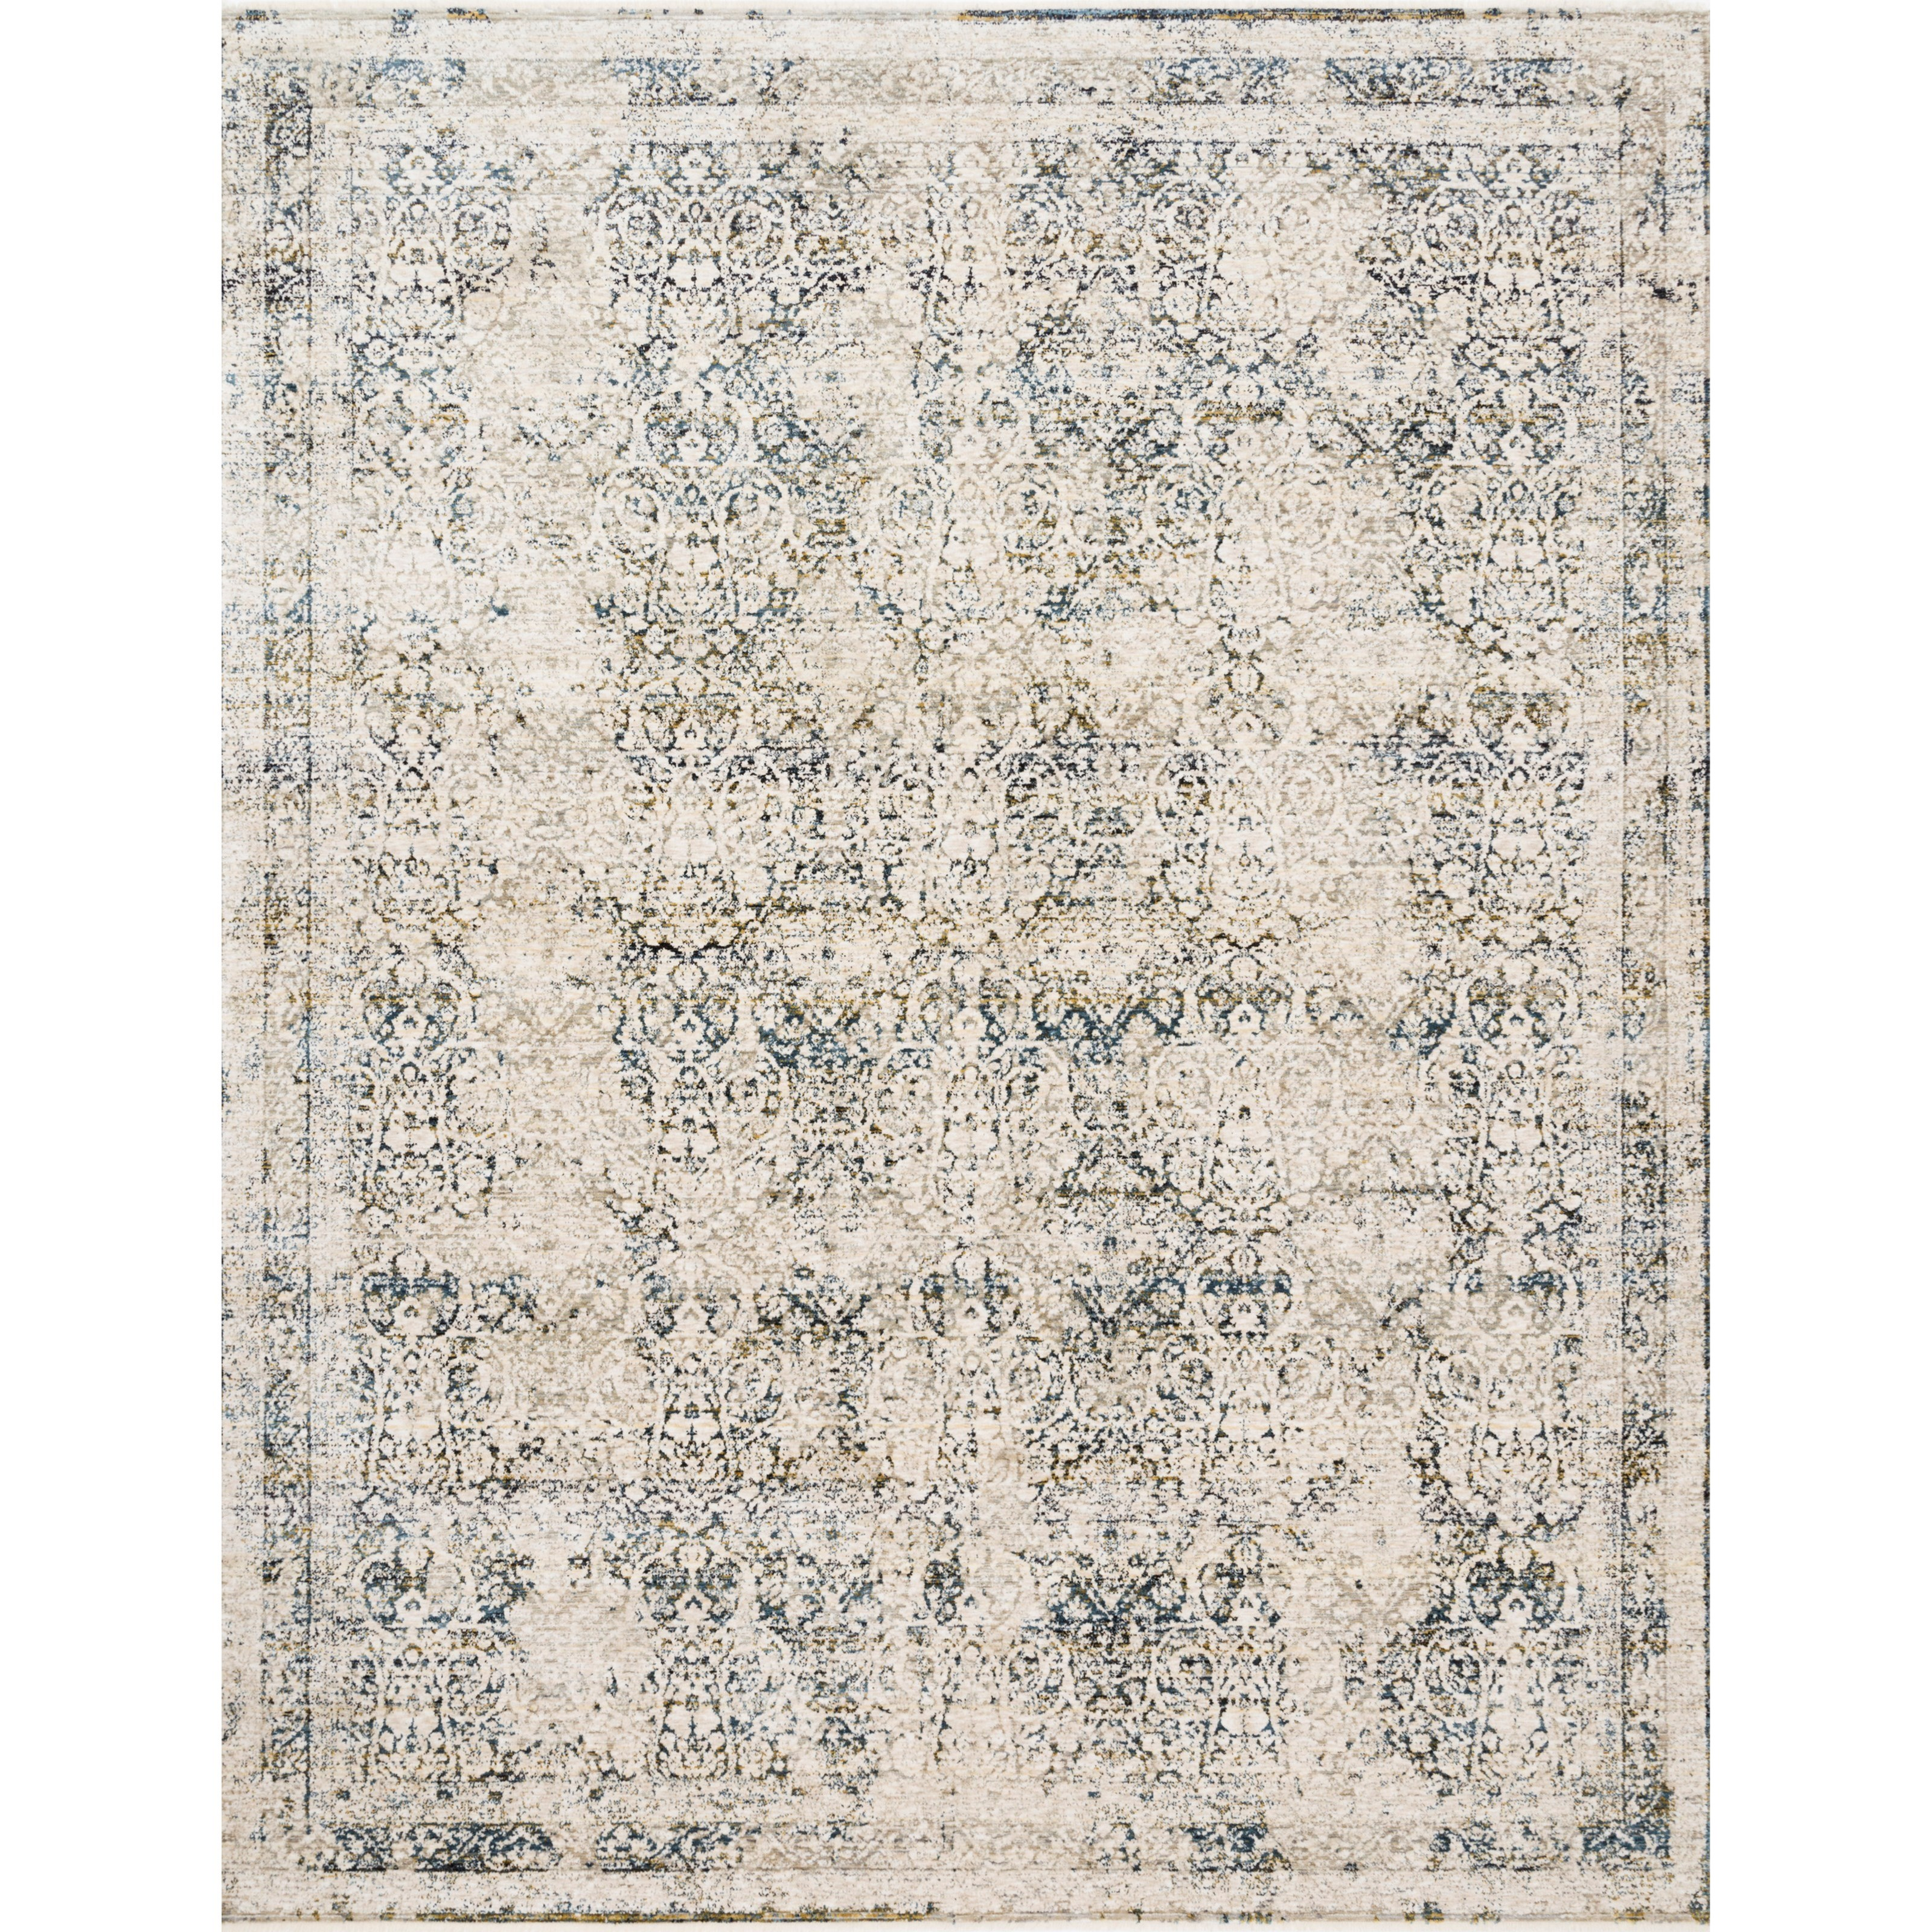 """Theia 9'5"""" x 12'10"""" Natural / Ocean Rug by Loloi Rugs at Virginia Furniture Market"""